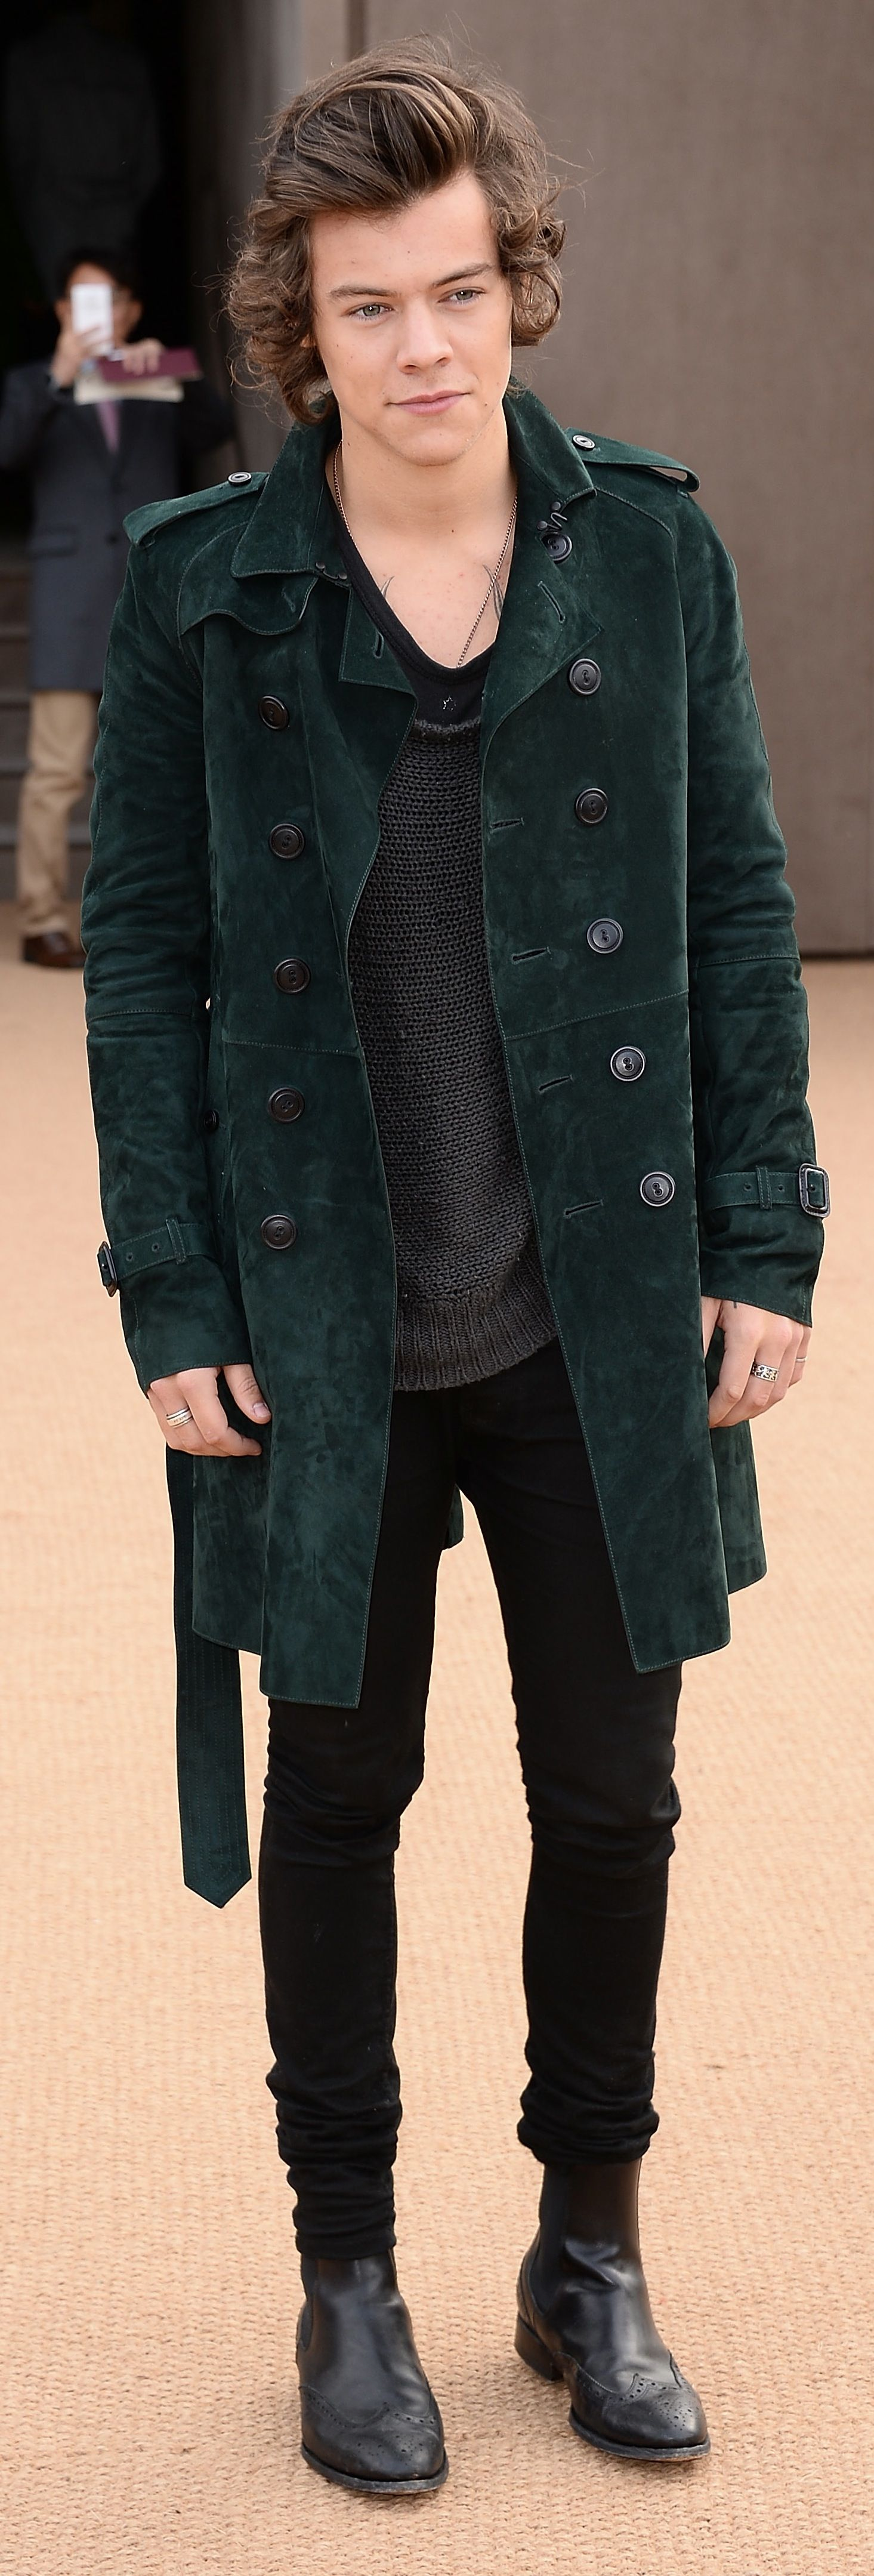 British musician Harry Styles wearing Burberry at the Burberry Prorsum Womenswear Autumn/Winter 2014 show in London